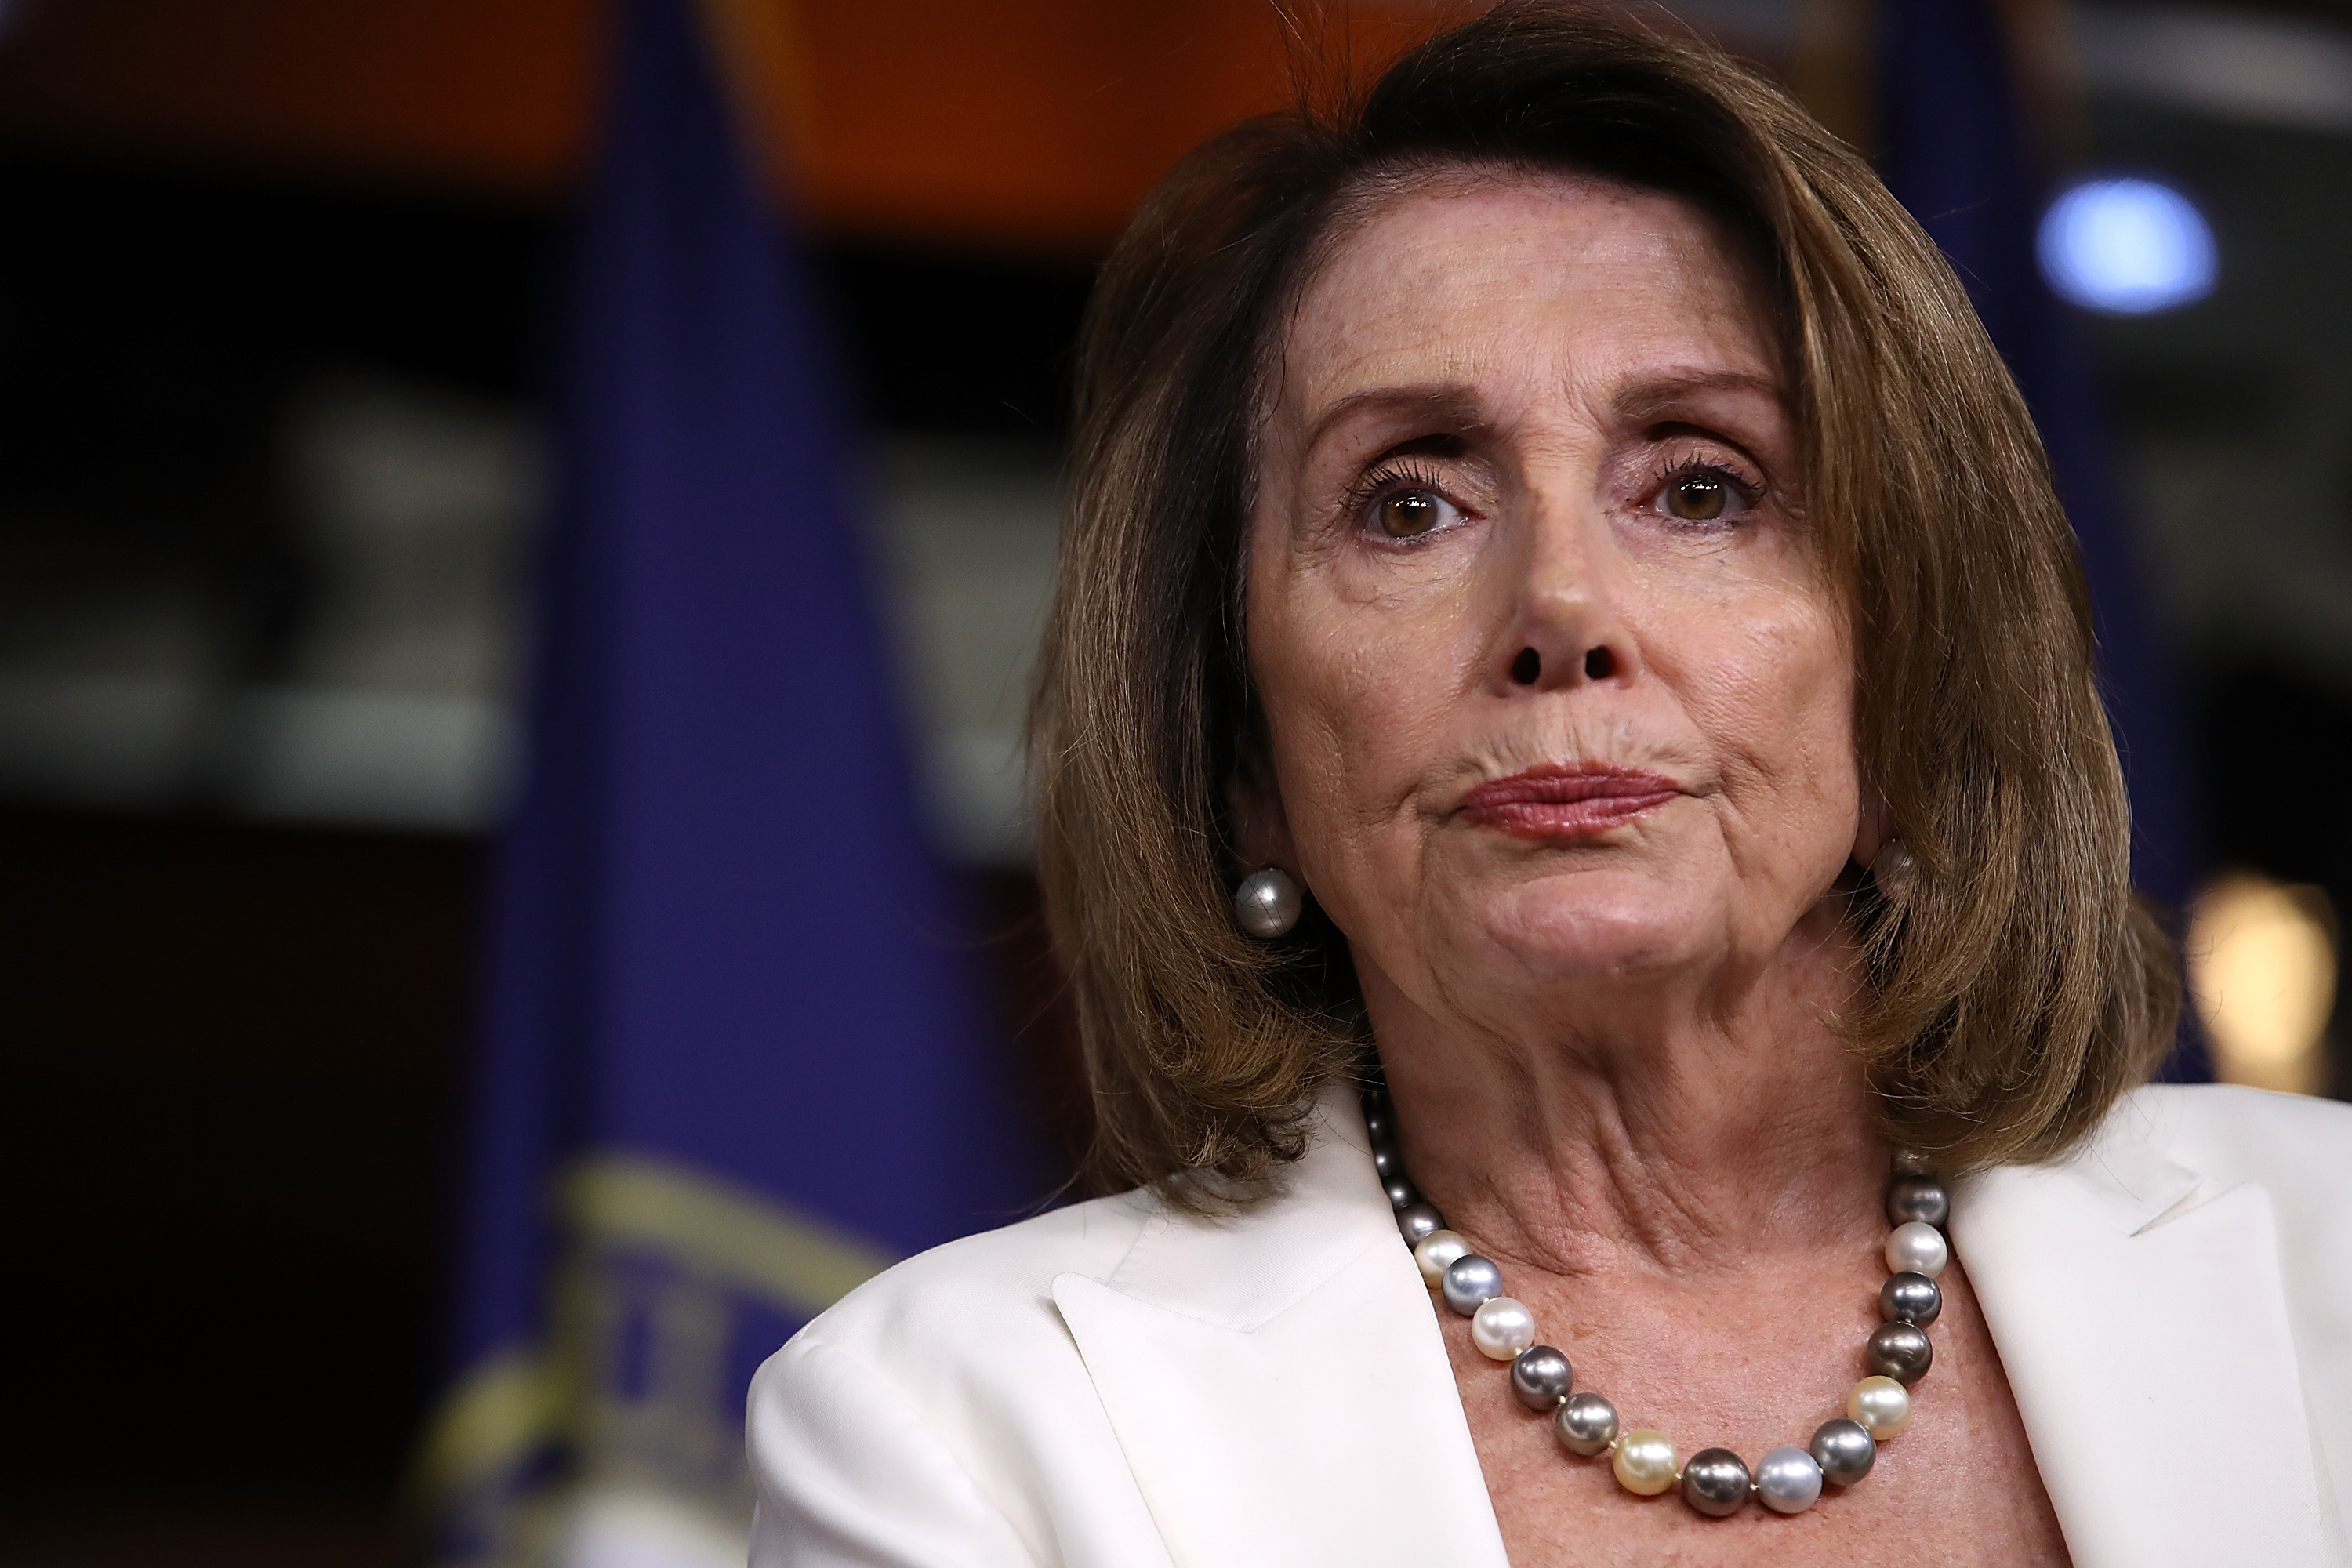 Immigration Activists Turn Up the Heat With Confrontational Takeover of Pelosi News Conference